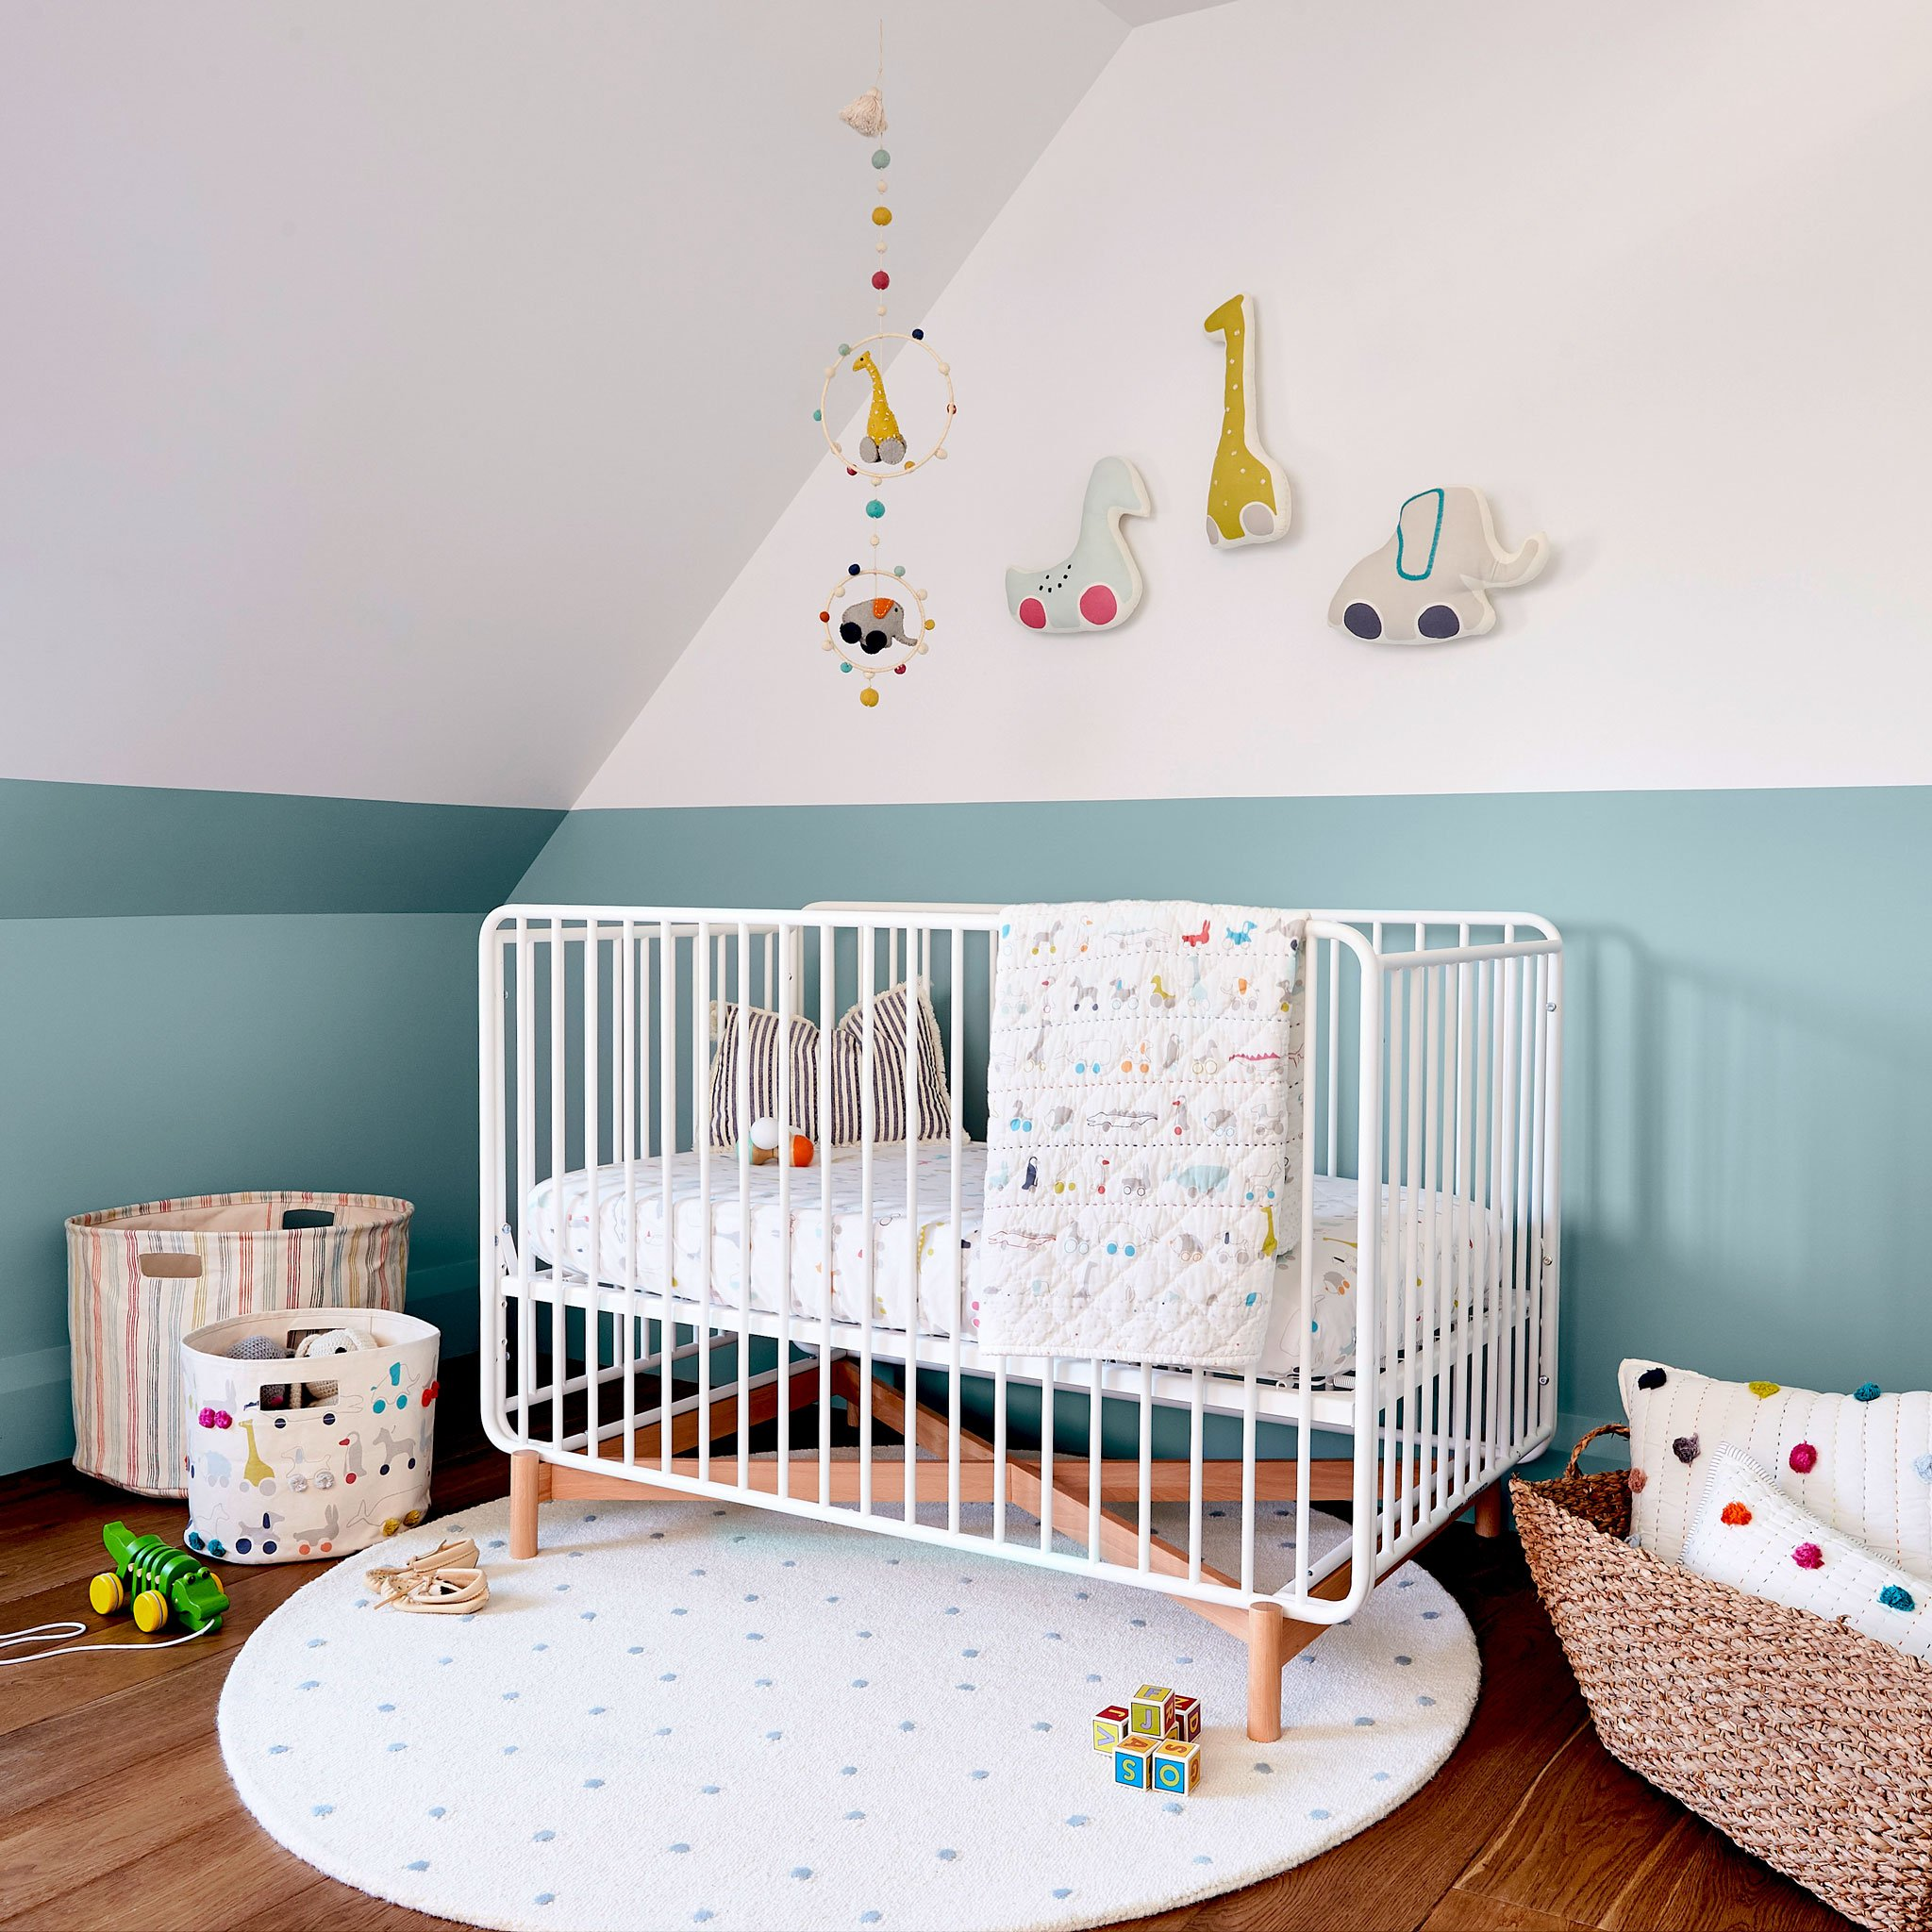 Other babyletto cribs you might love